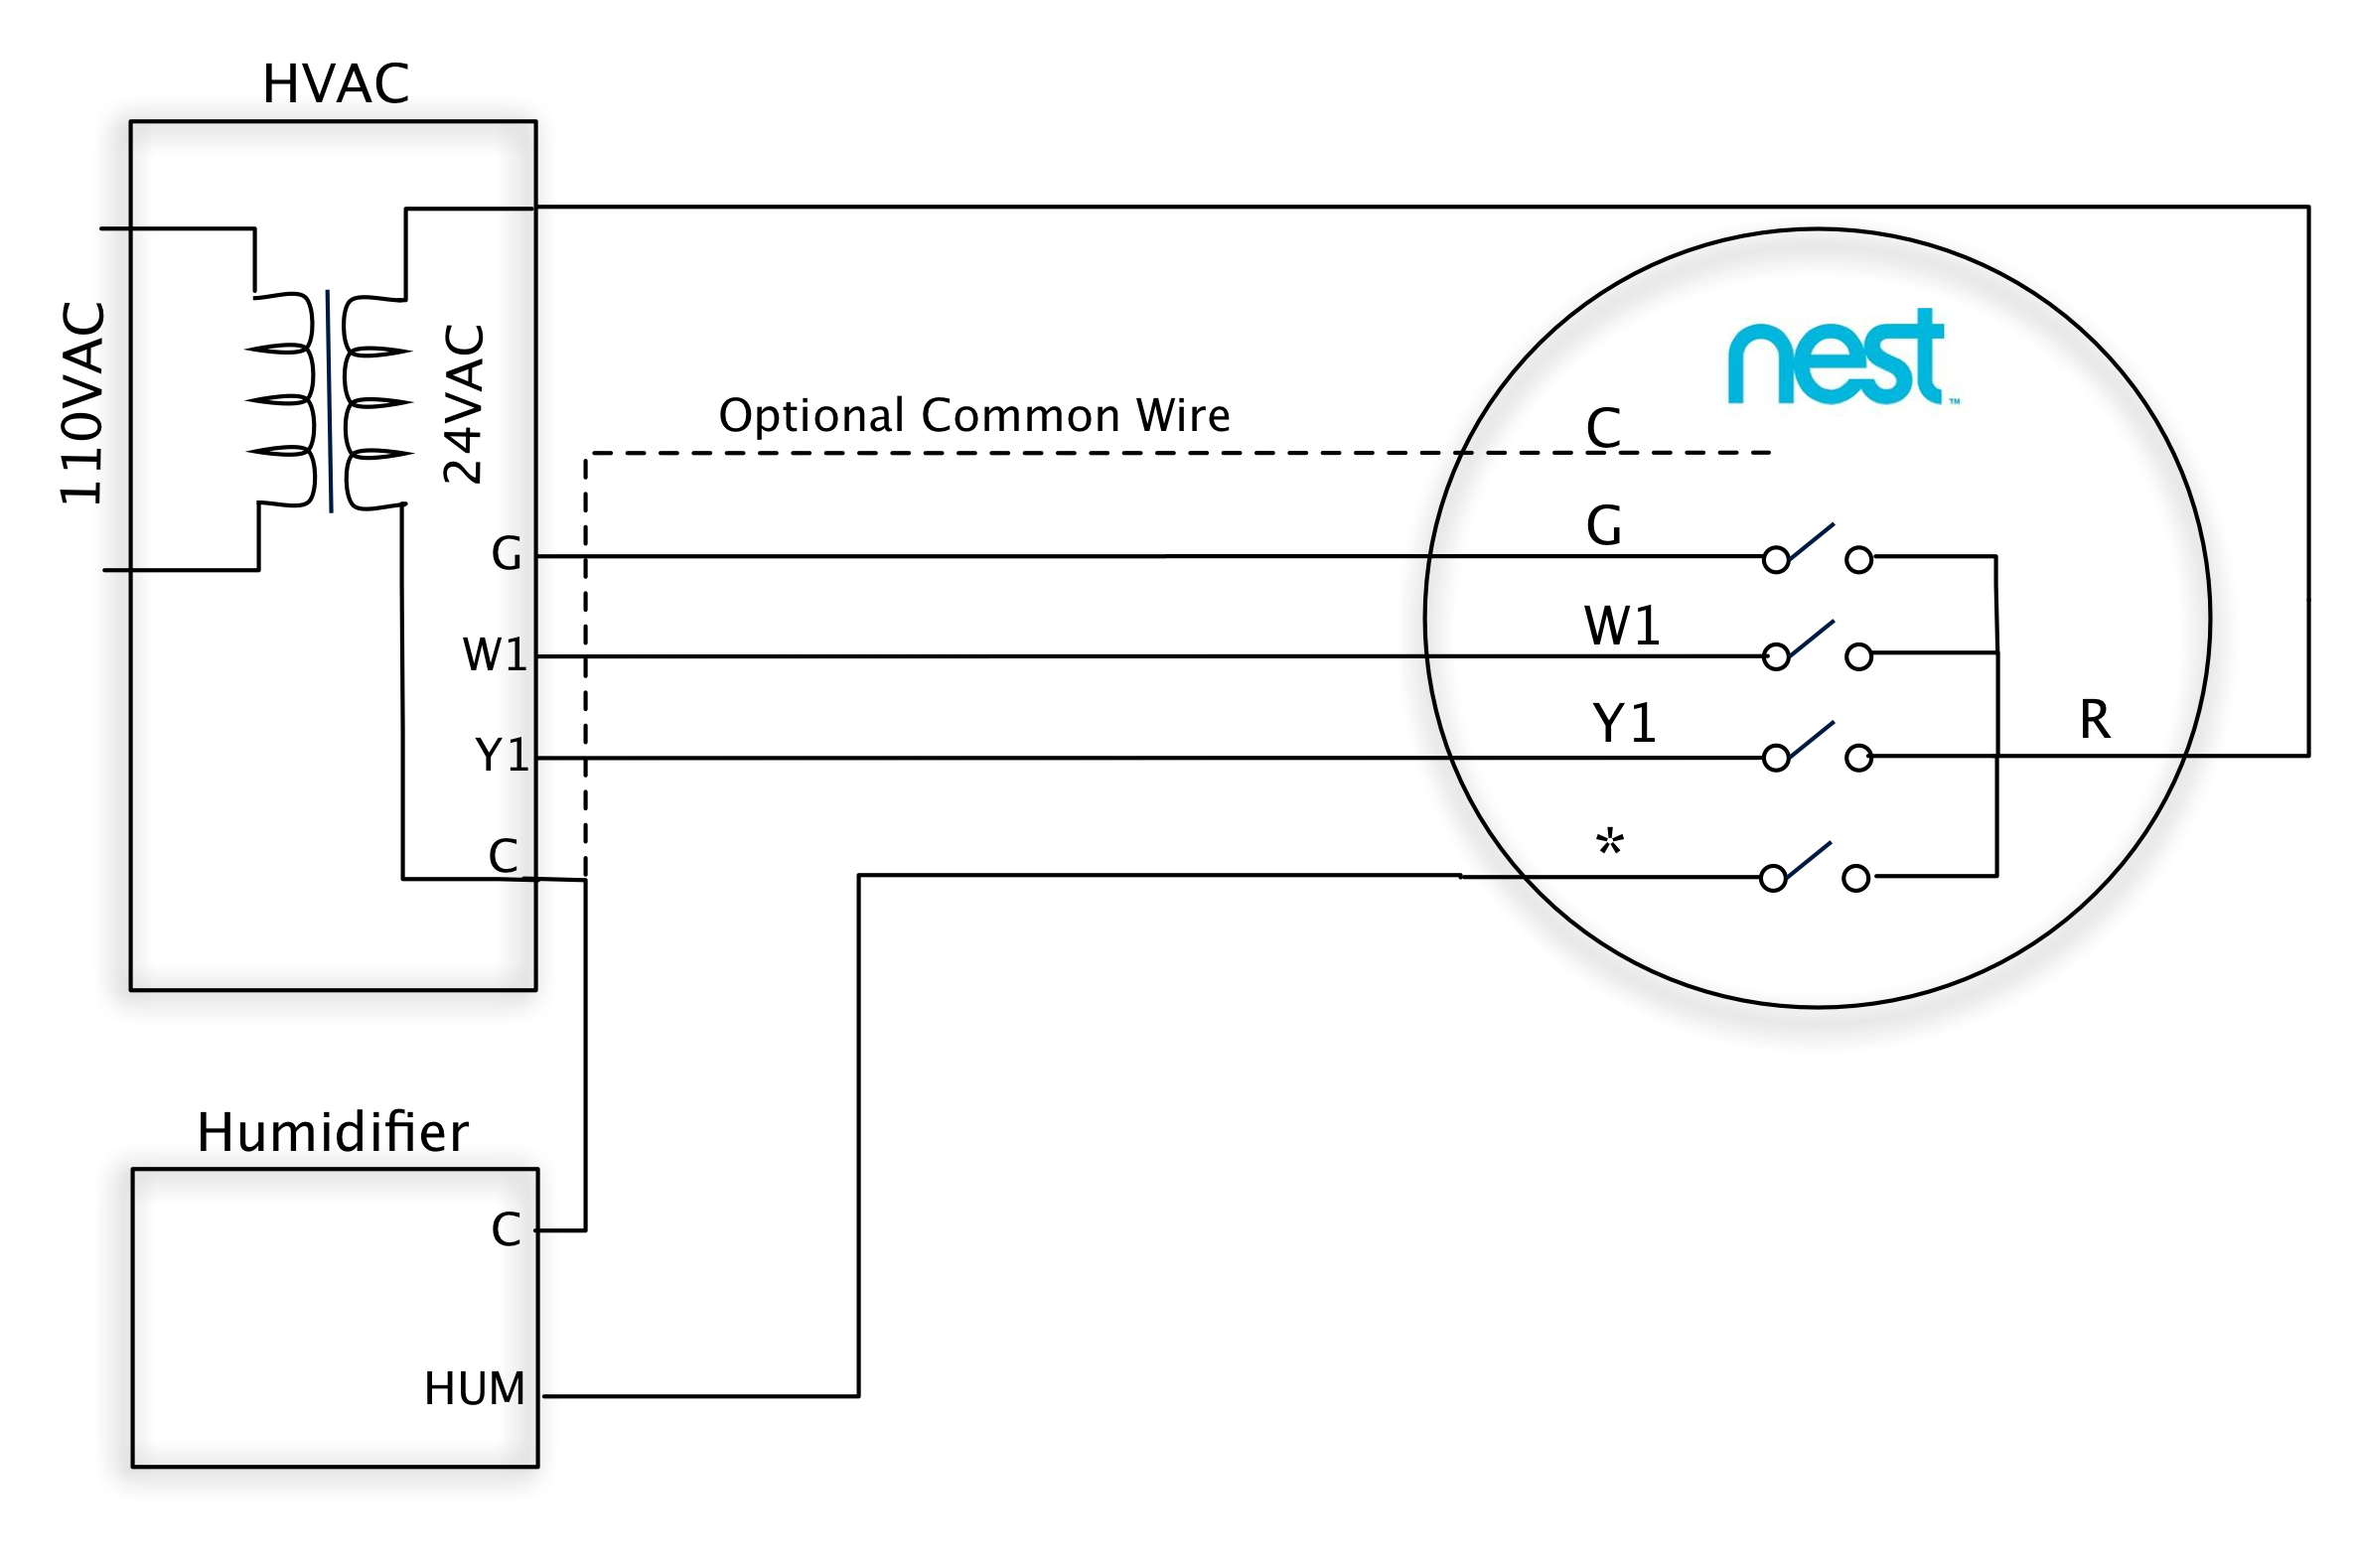 Stand Alone Hum 1 wire nest learning thermostat advanced installation and setup help for humidistat wiring diagram at soozxer.org